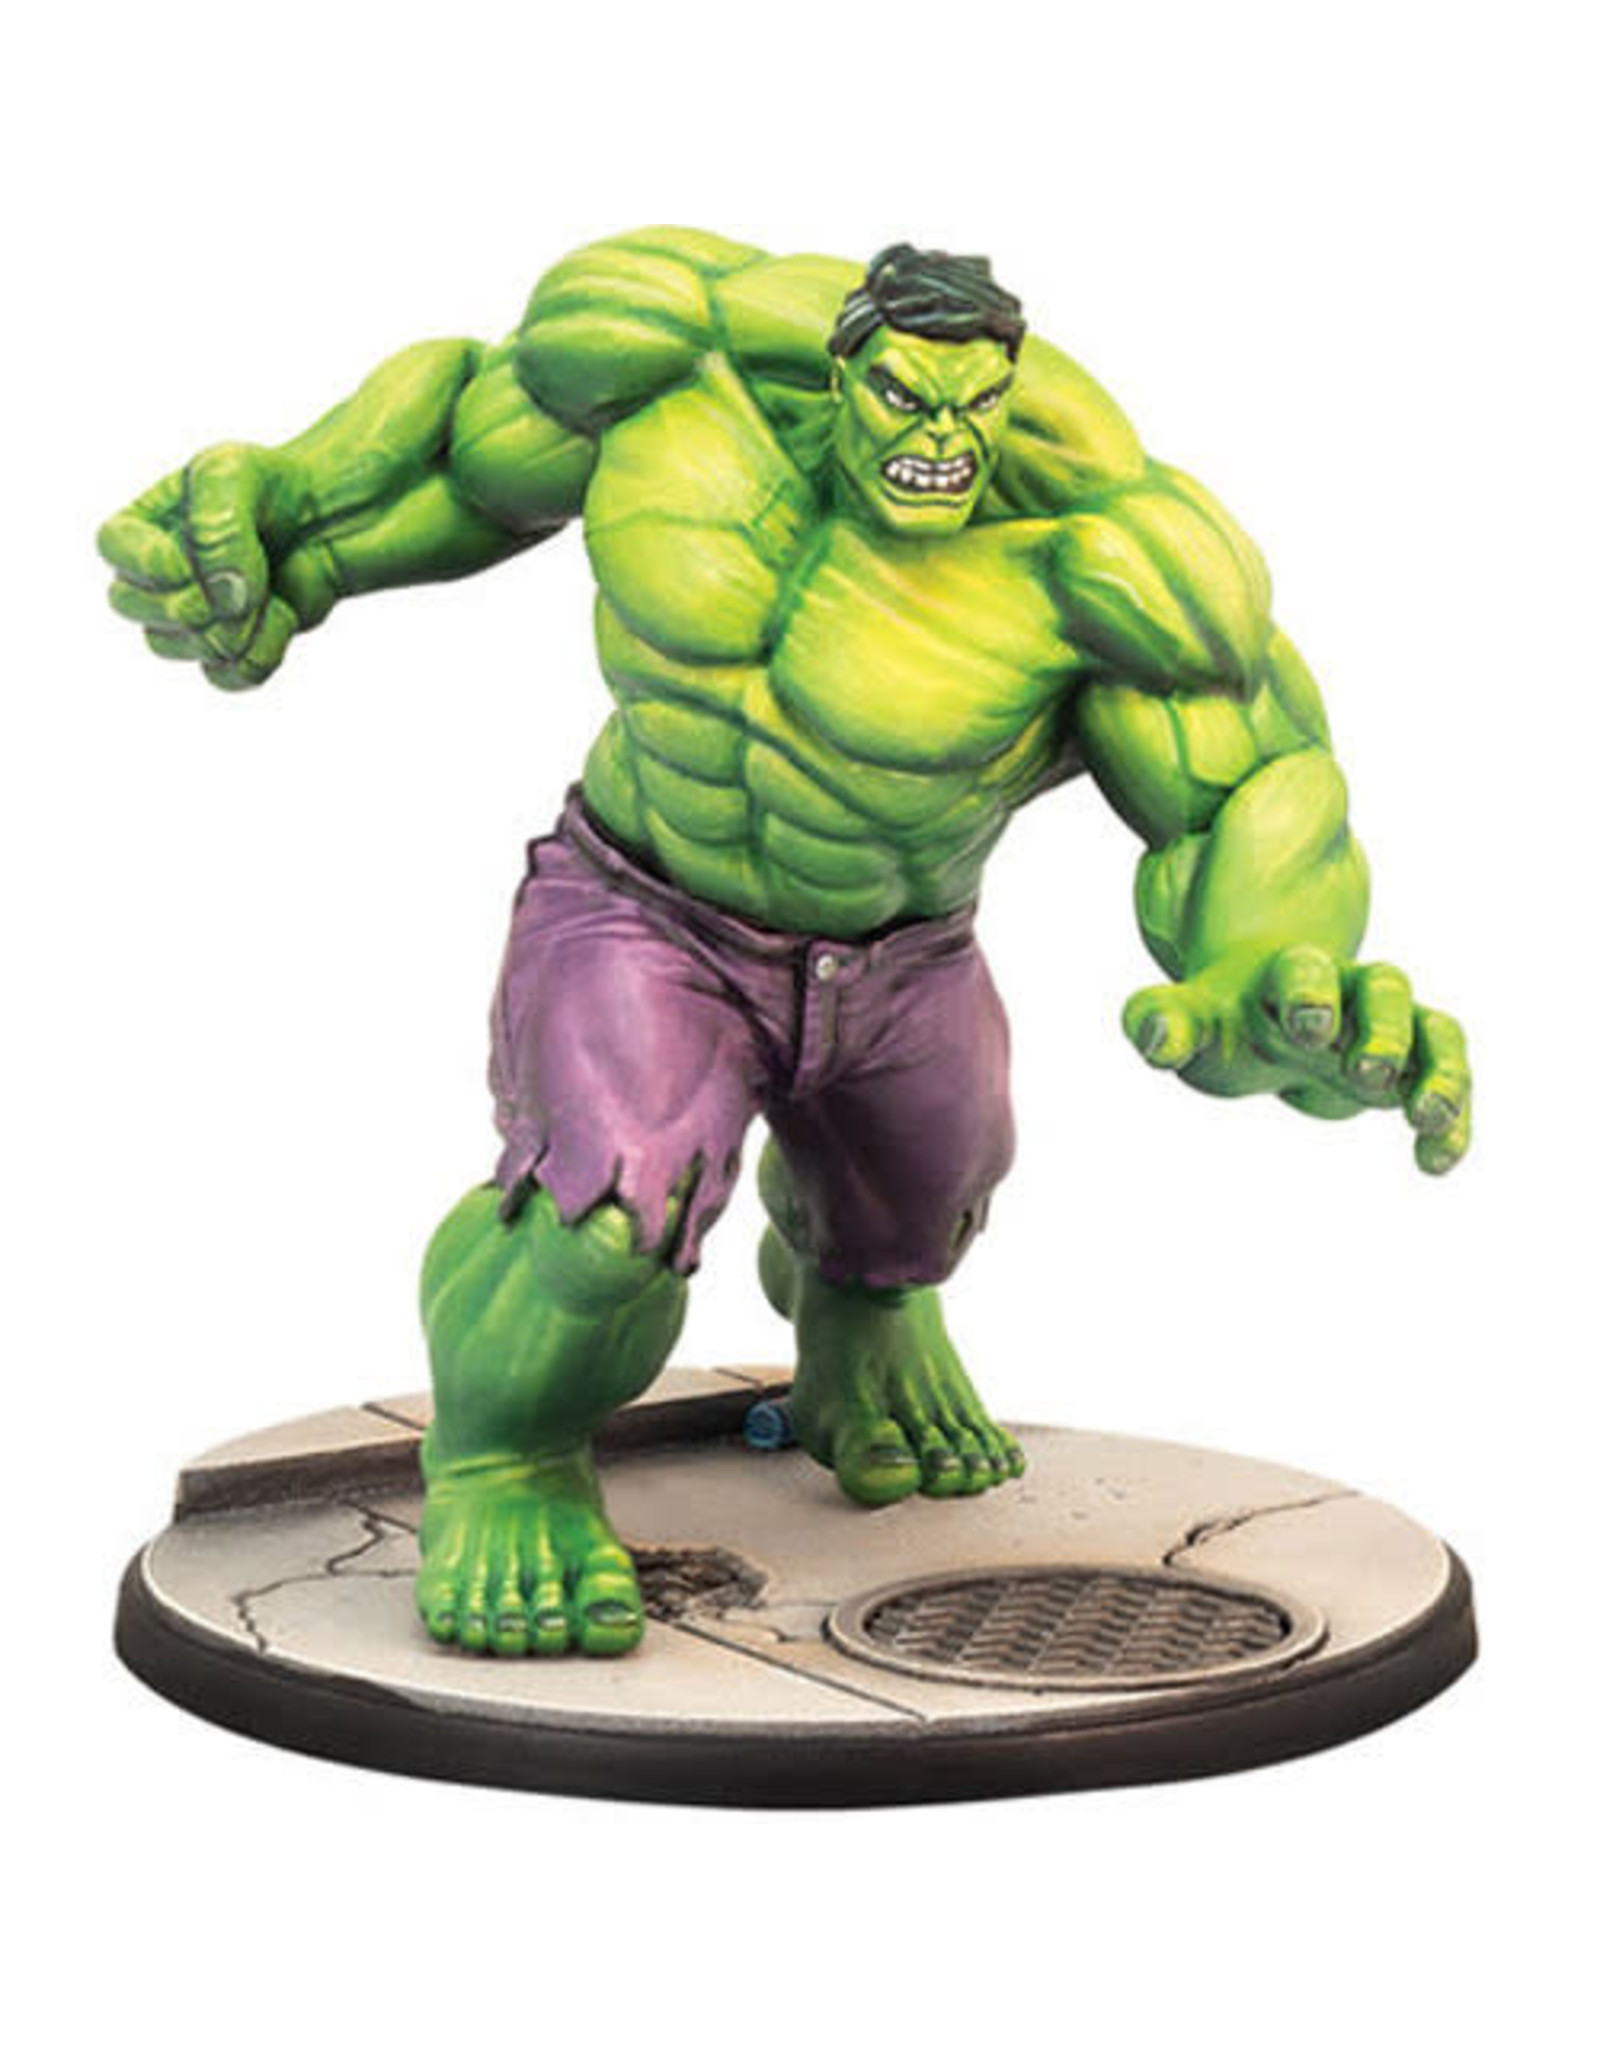 Marvel Crisis Protocol Hulk Character Pack Go4games Players choose characters from their collections to form their own marvel. atomic mass games marvel crisis protocol hulk character pack